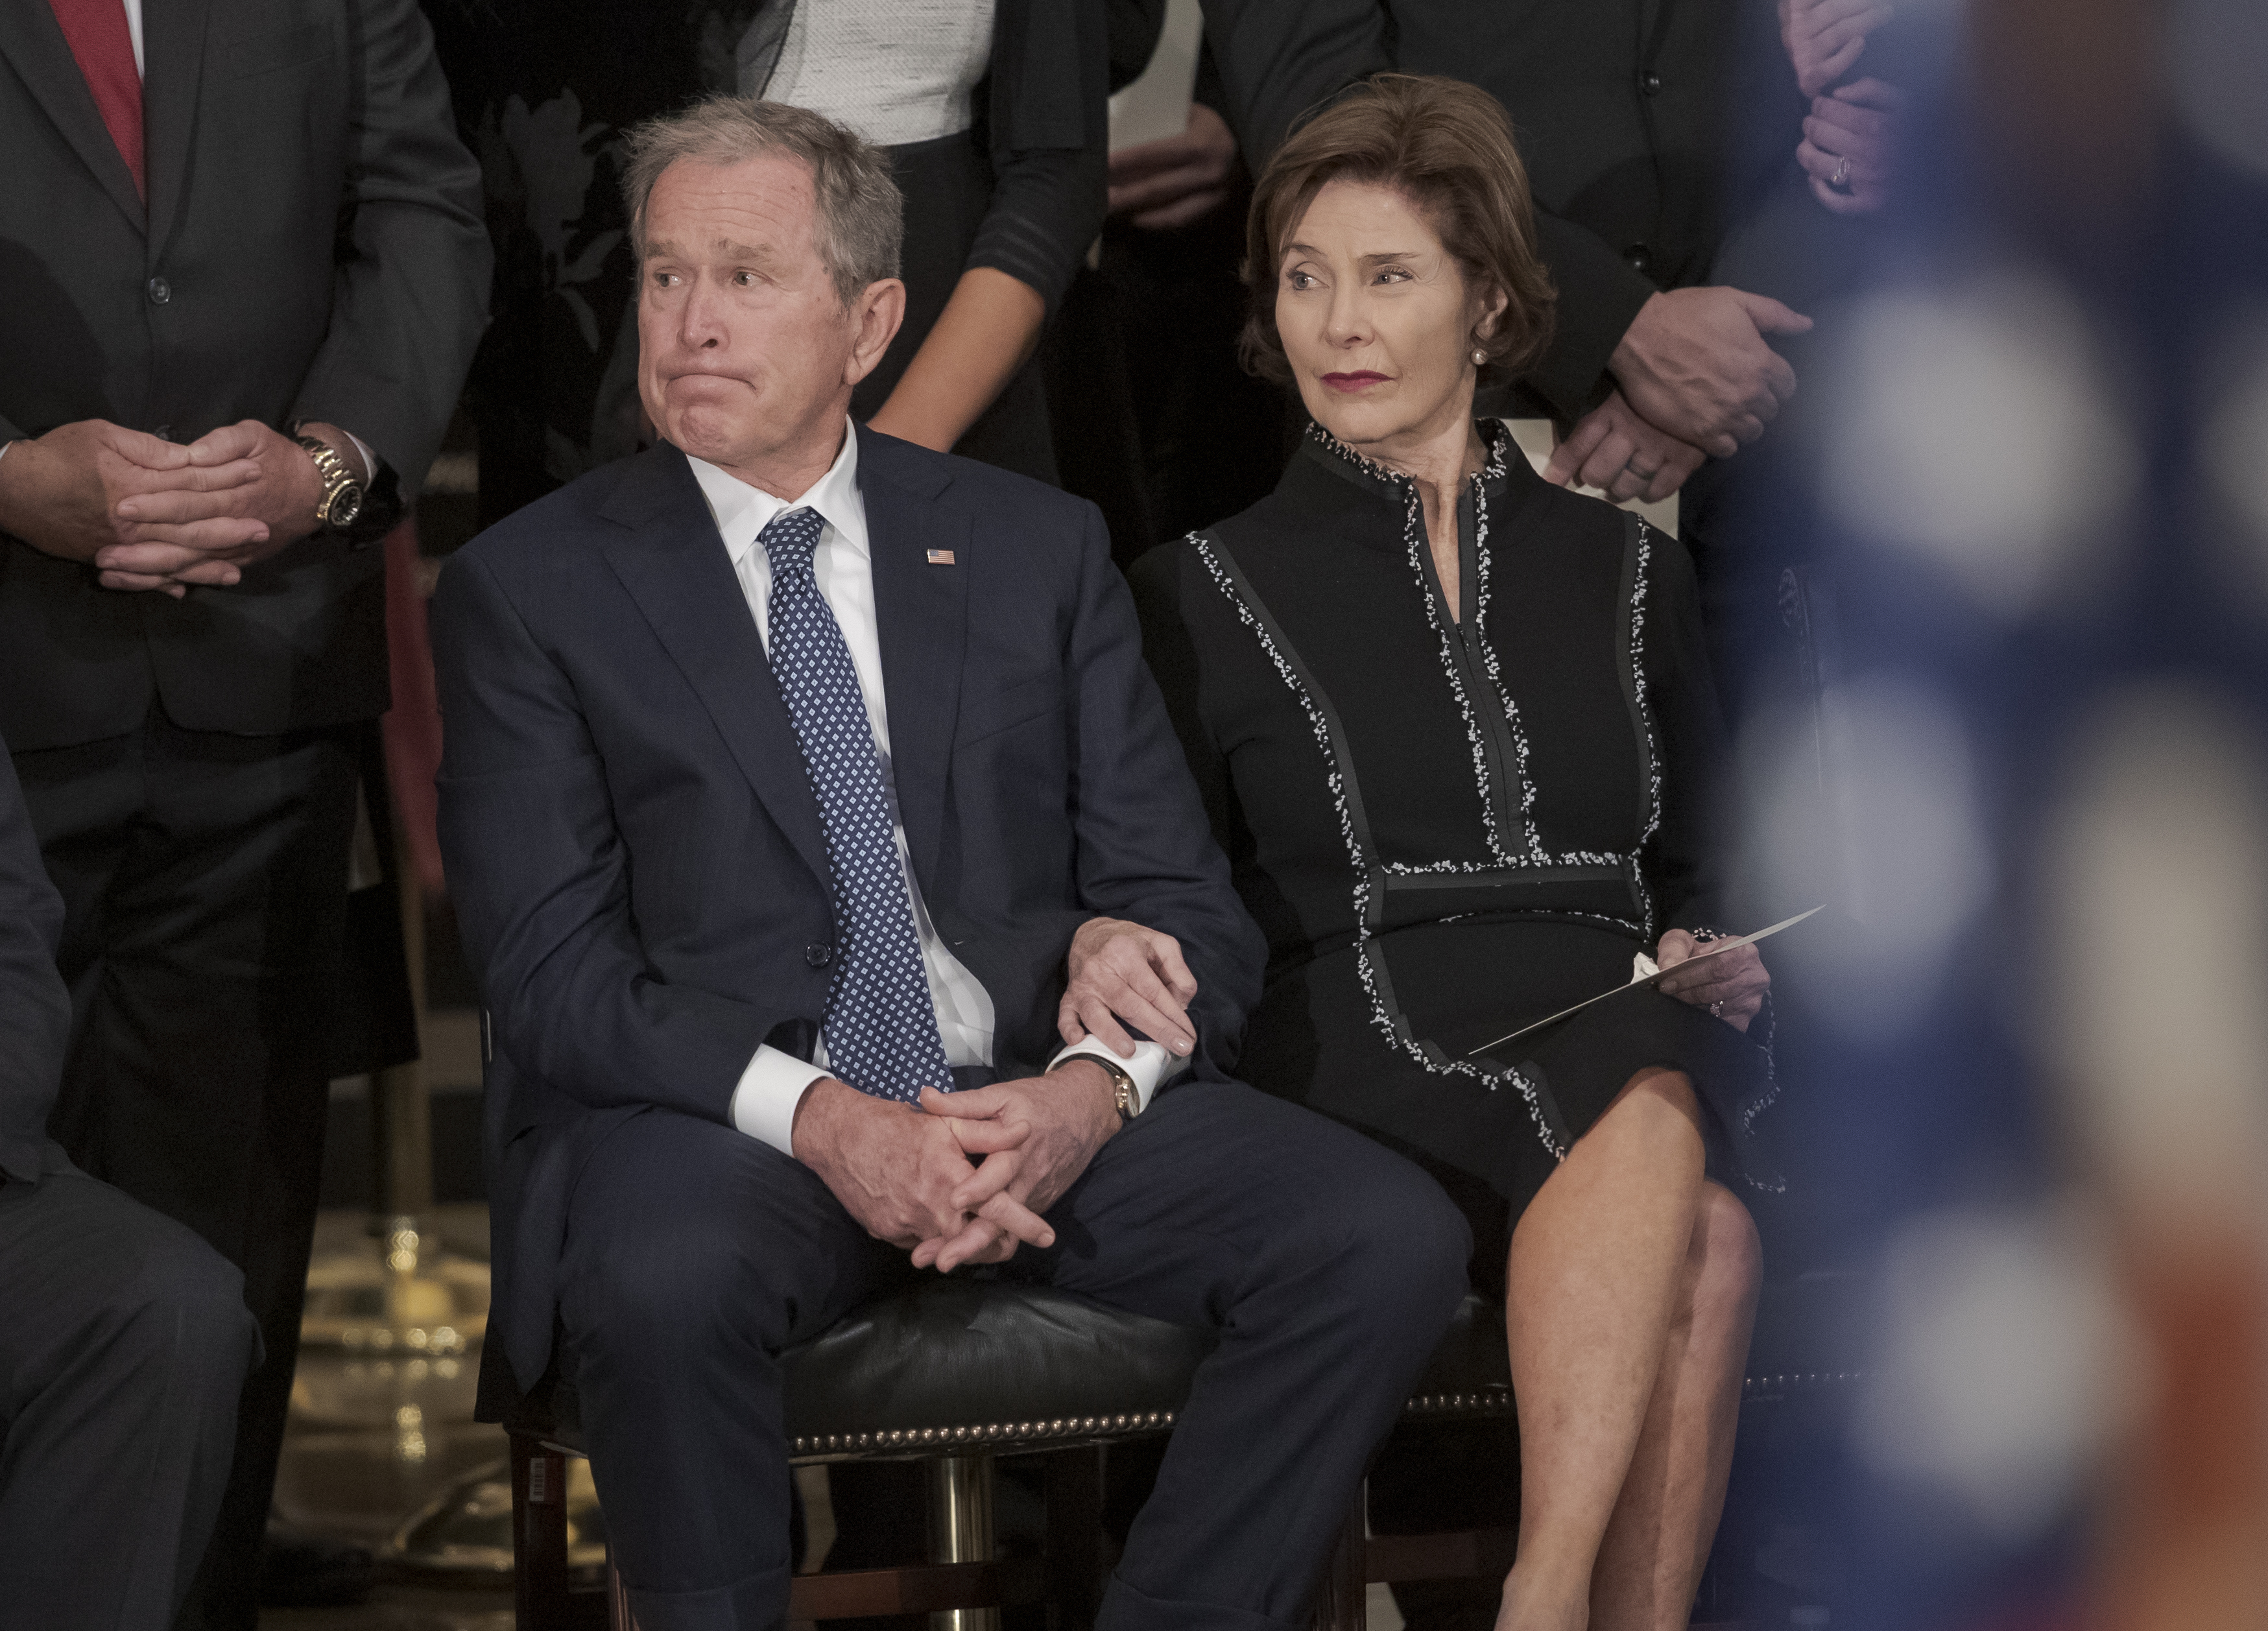 Former President George W. Bush, with former first lady Laura Bush, listens to eulogies for his father, President George H.W. Bush, as he lies in state at the Capitol Rotunda where in Washington, Monday, Dec. 3, 2018. (AP Photo/J. Scott Applewhite)